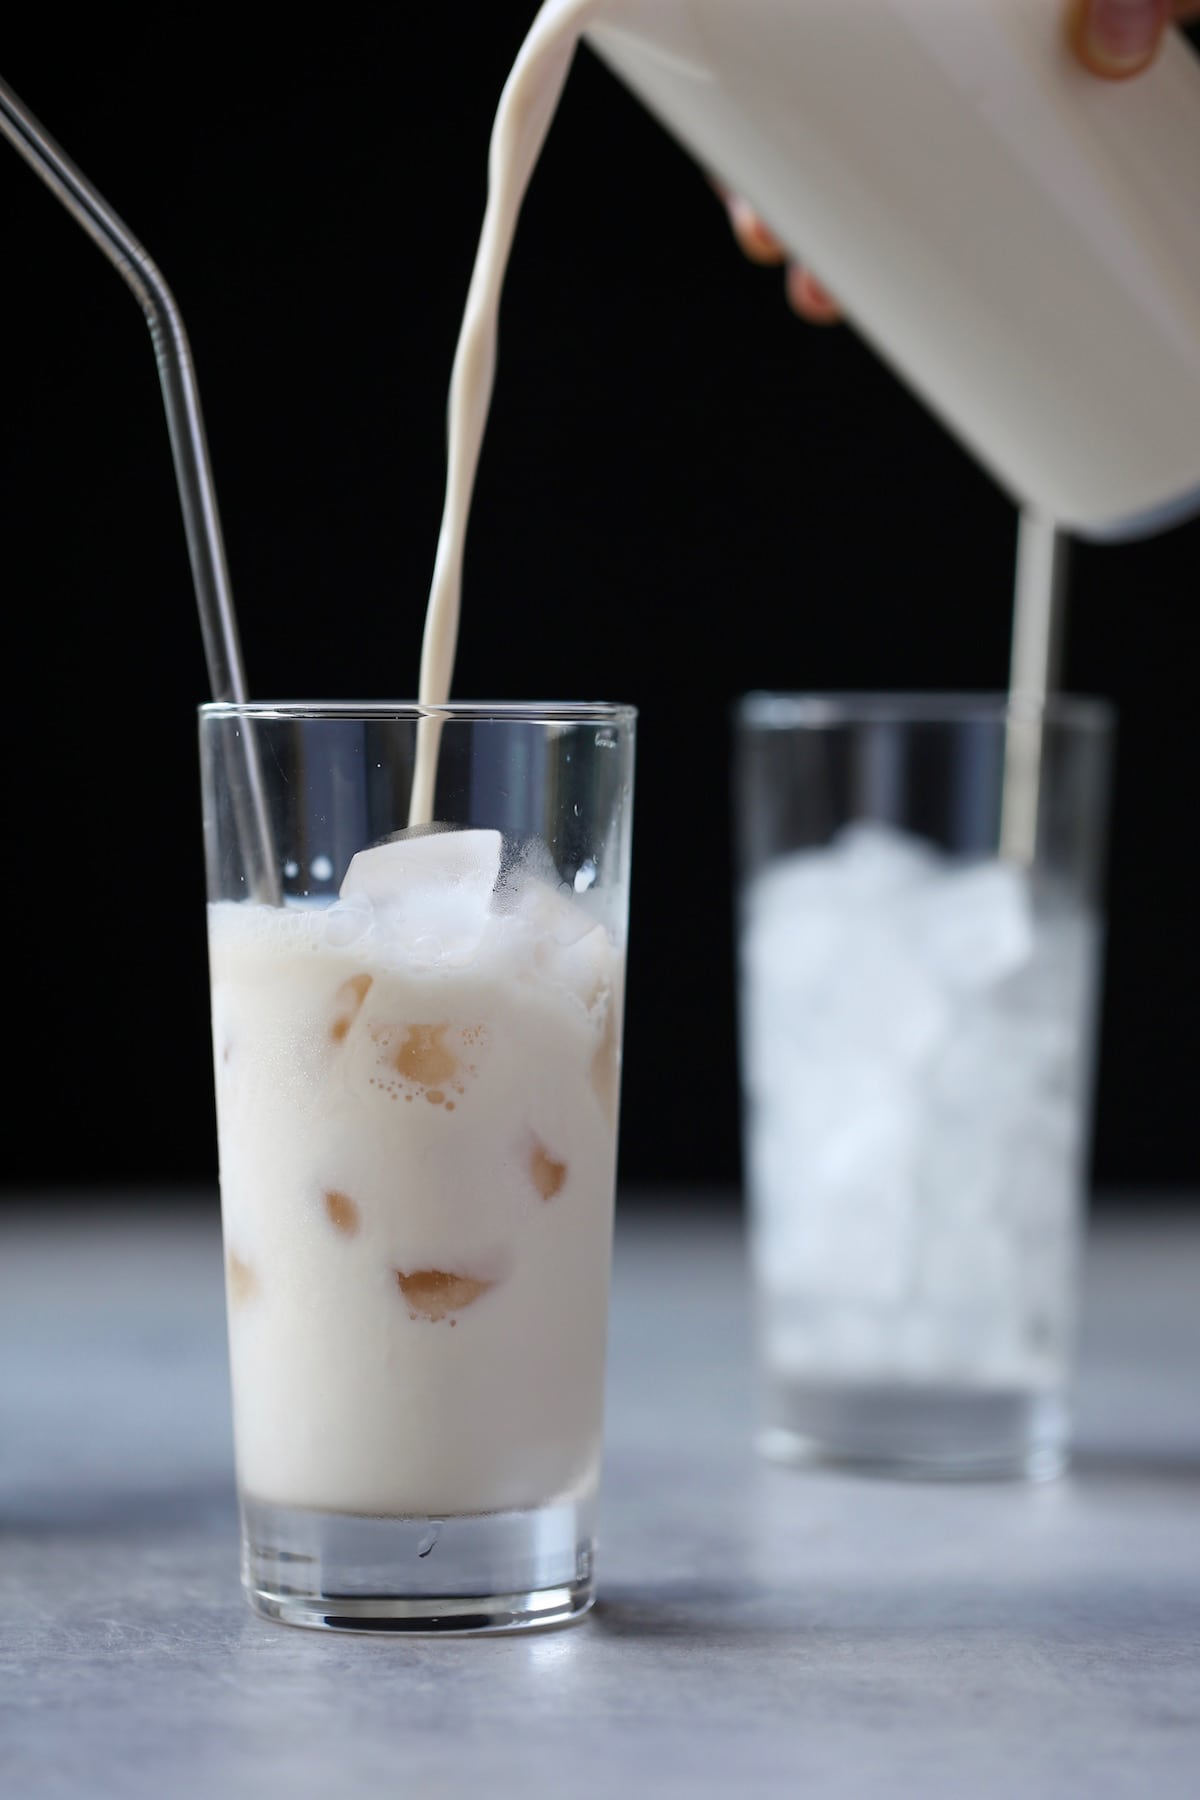 milk being poured into a glass of ice